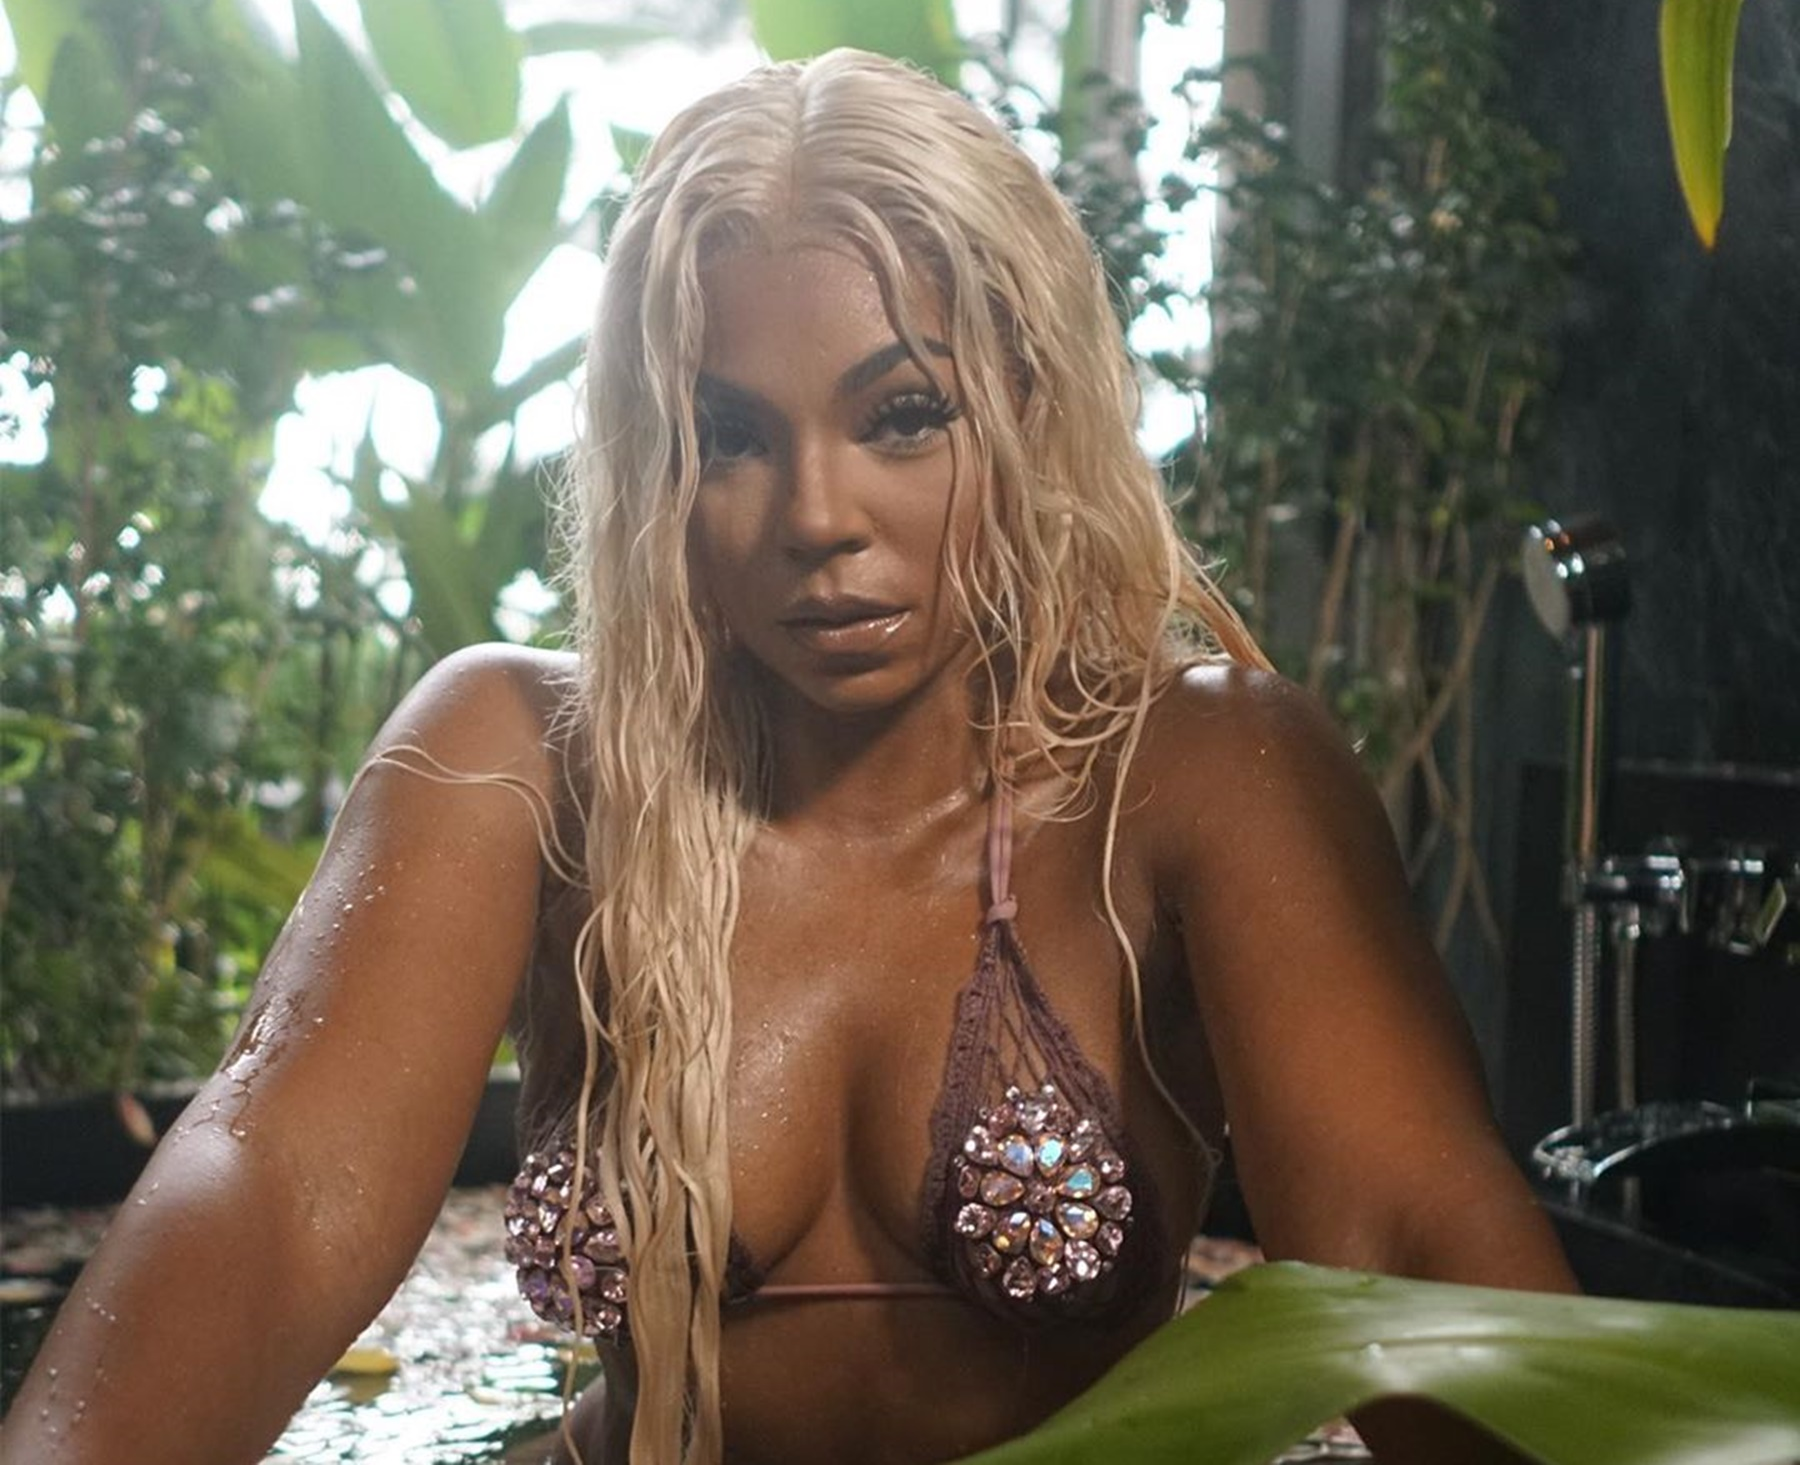 ashanti-has-fans-drooling-in-sensual-barely-there-bathing-suit-while-playing-in-a-bathtub-full-of-rose-petals